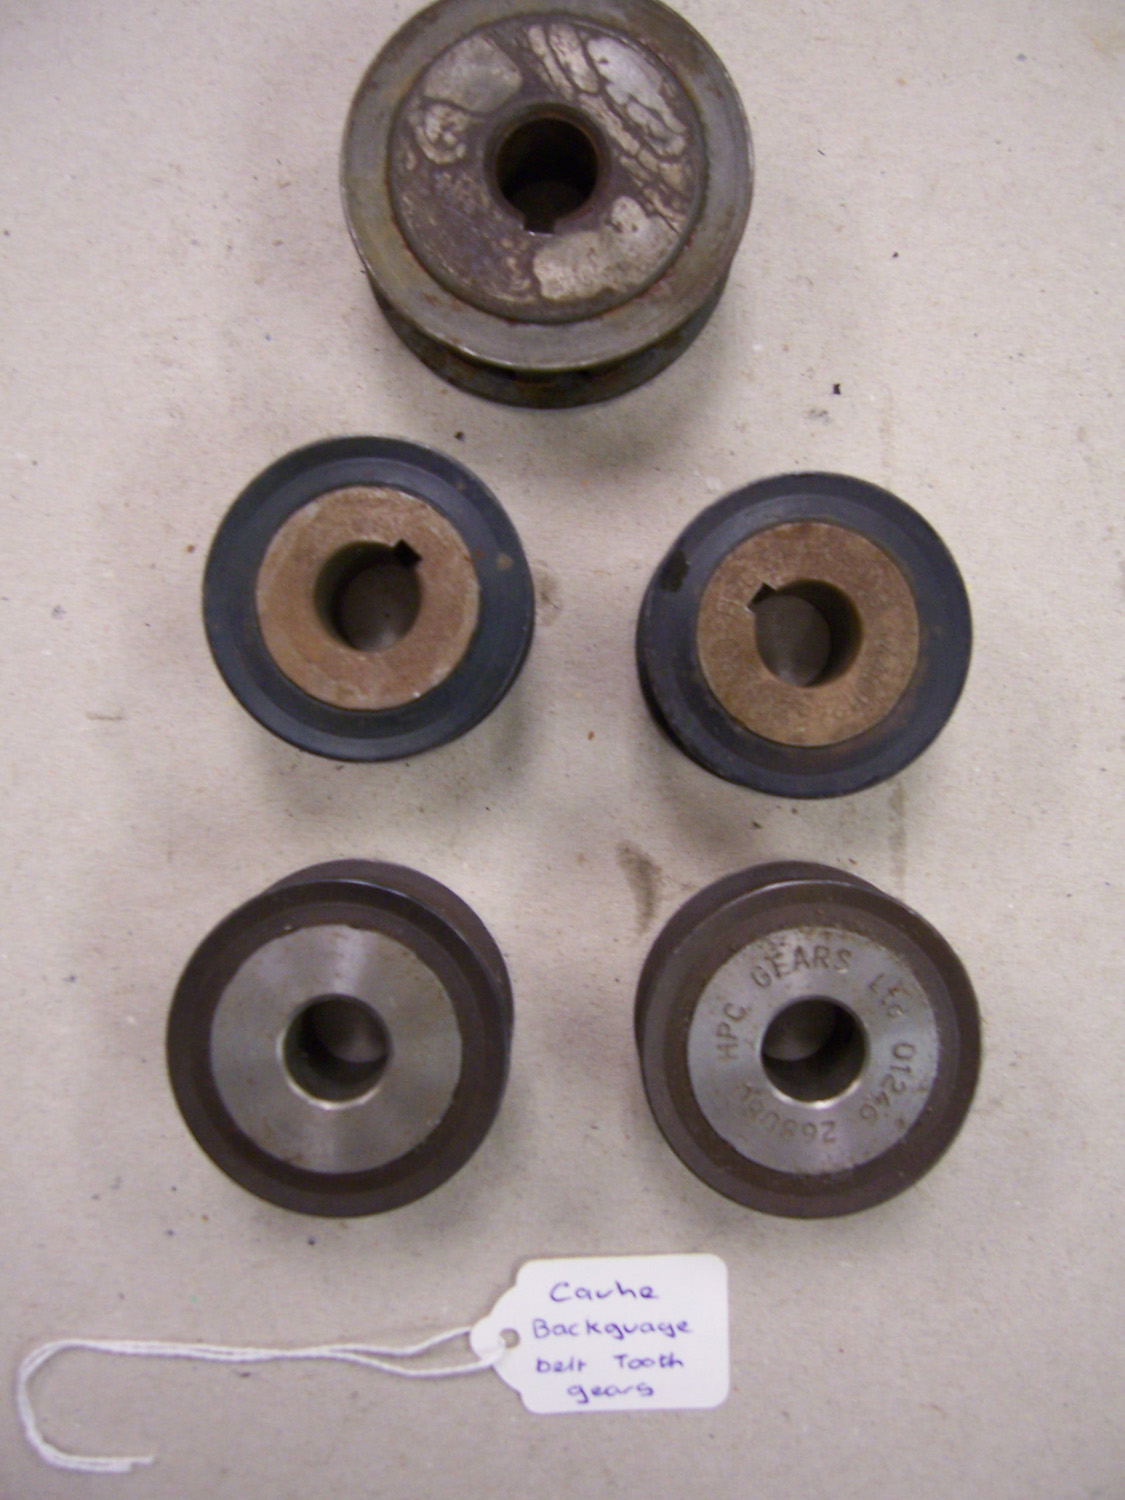 Cauhe Backguage Belt Tooth Gears